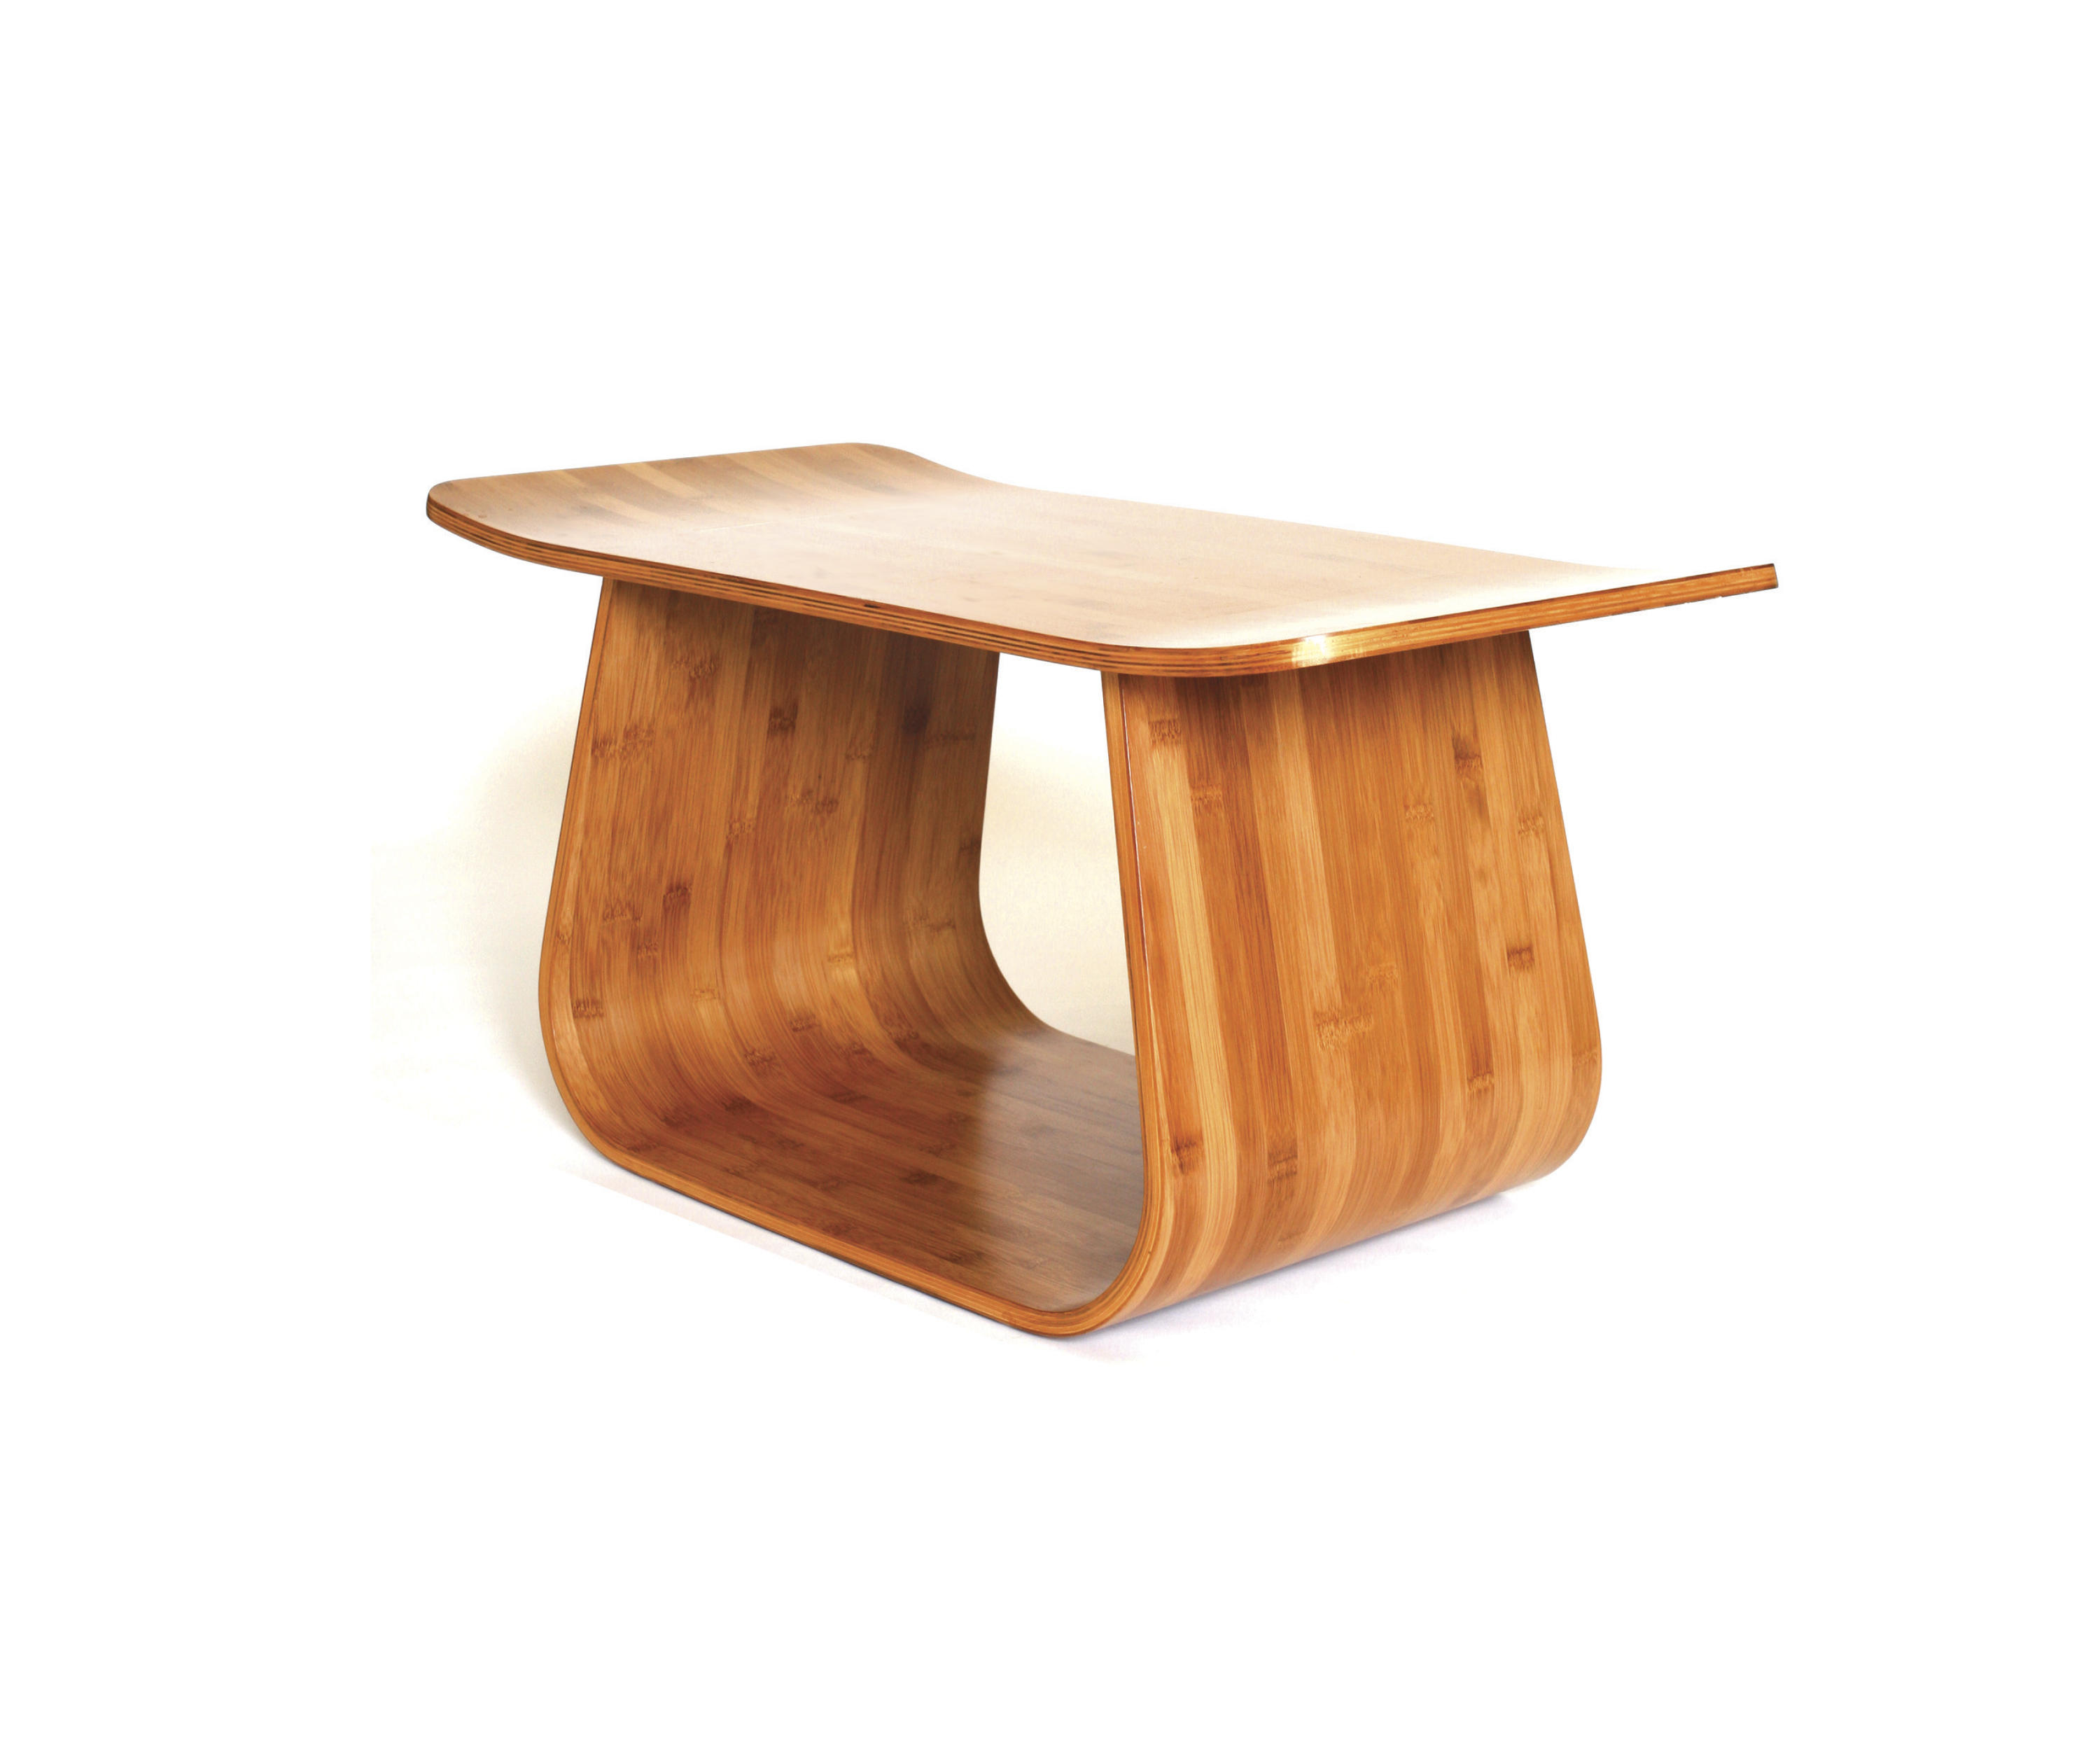 image quarter bamboo bathroom stool becca stool side tables modern bamboo